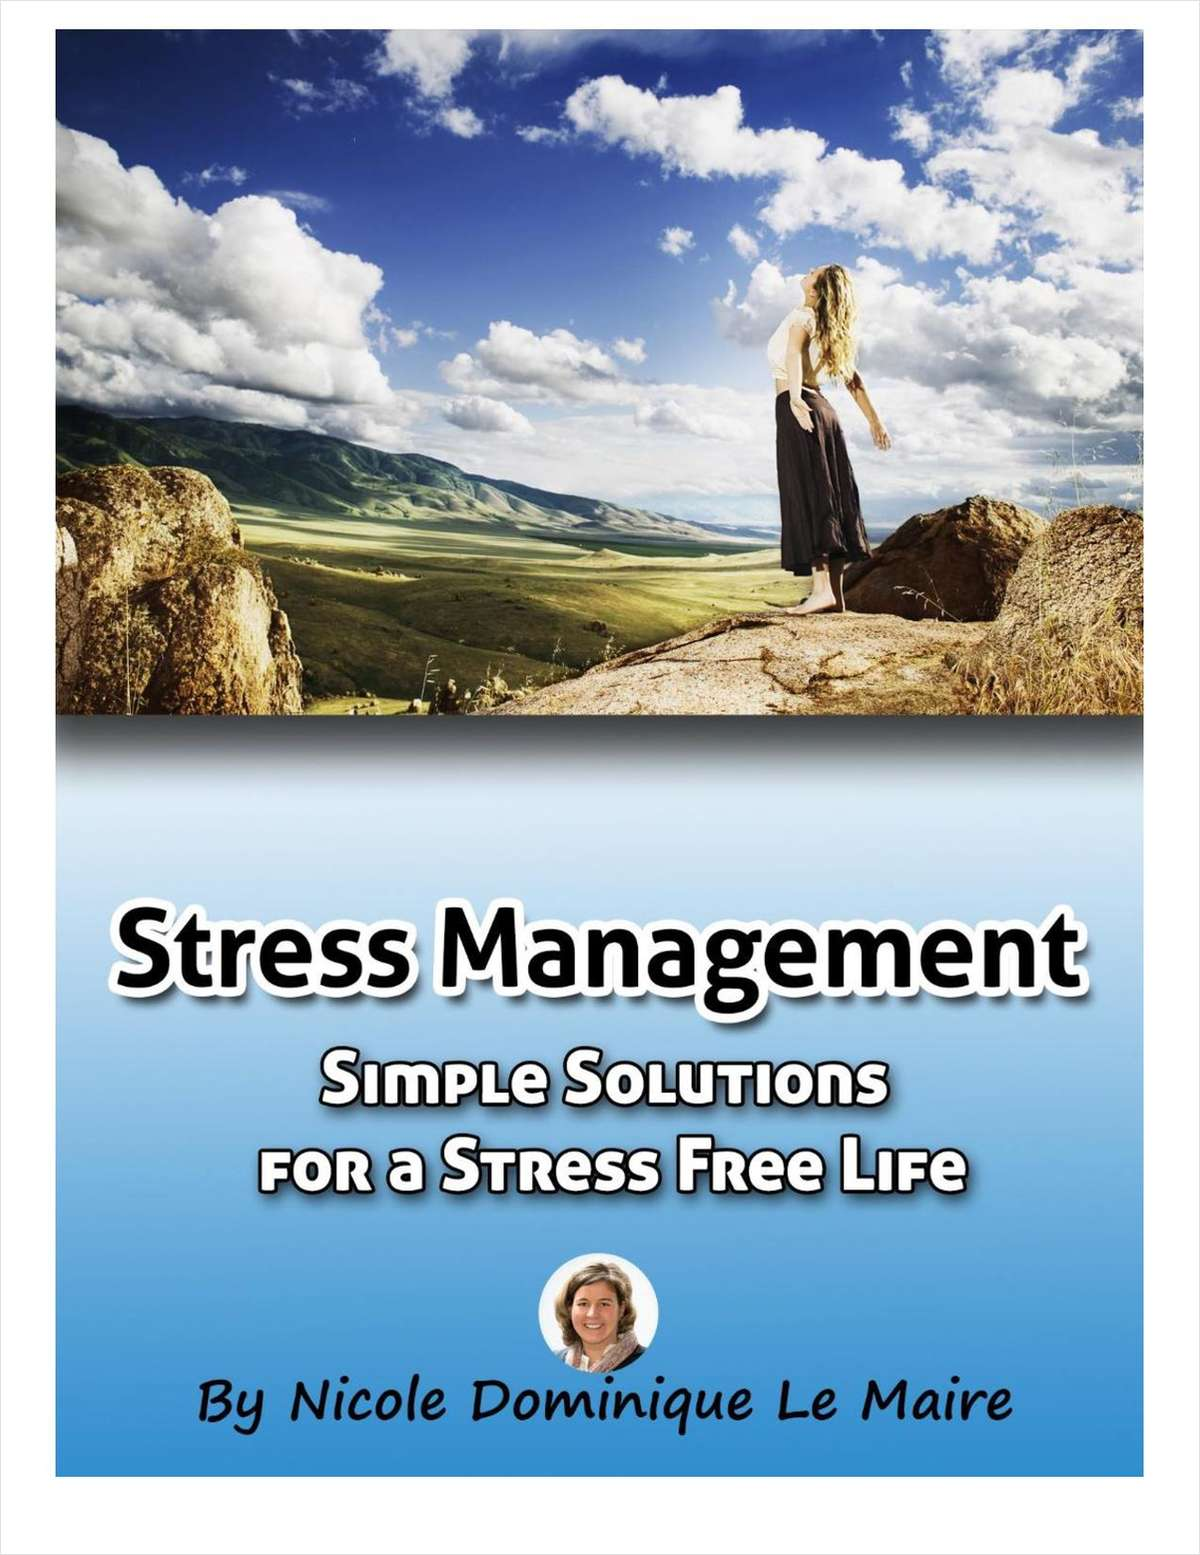 Stress Management: Simple Solutions for a Stress Free Life